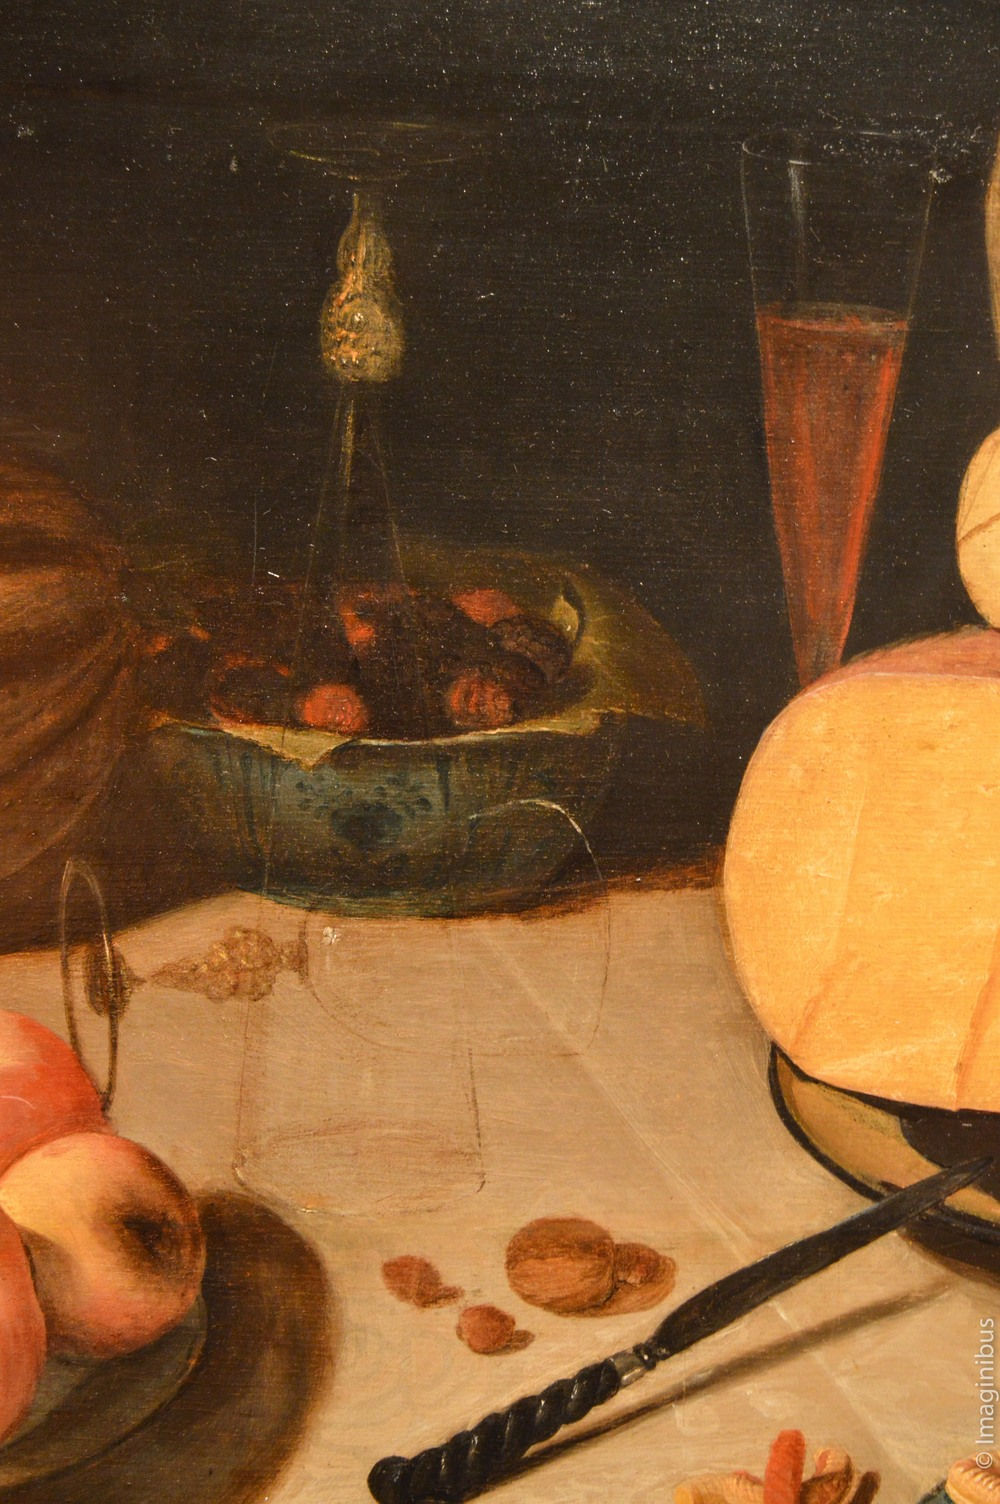 Banquet Piece, Montreal Museum of Fine Arts